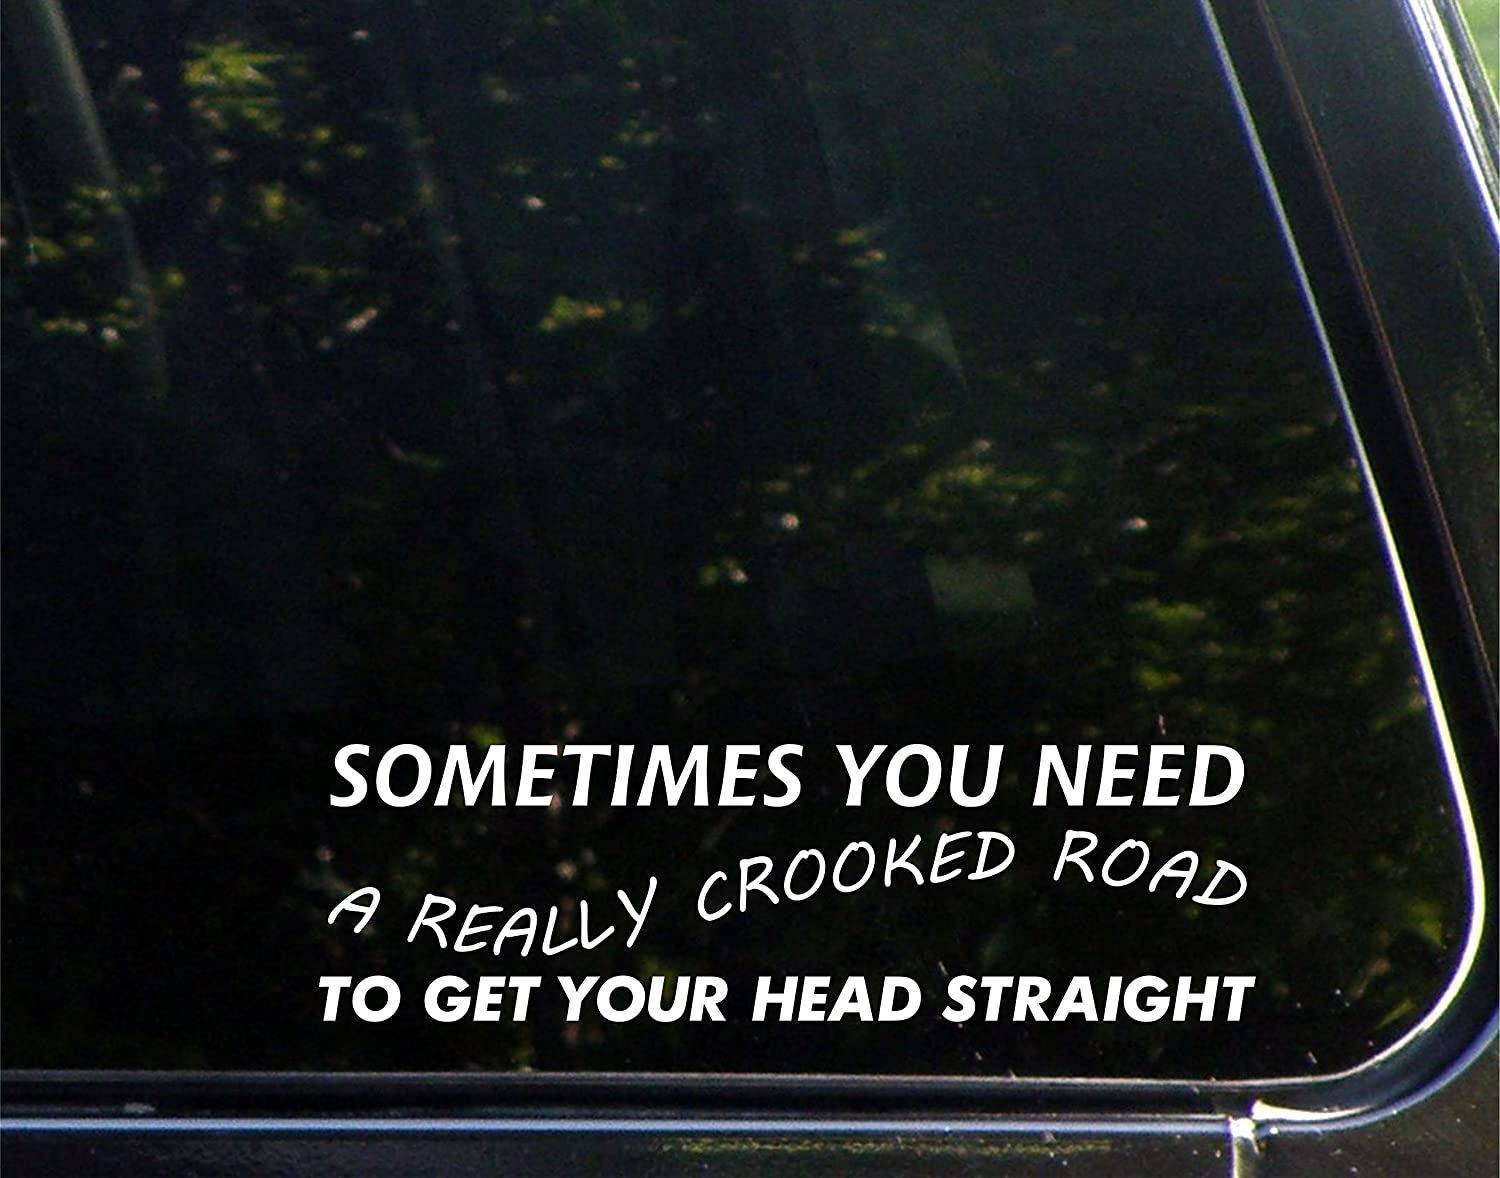 "Sometimes You Need A Really Crooked Road to Get Your Head Straight - 8-3/4"" x 2-1/2"" - Vinyl Die Cut Decal/Bumper Sticker for Windows, Cars, Trucks, Laptops, Etc."